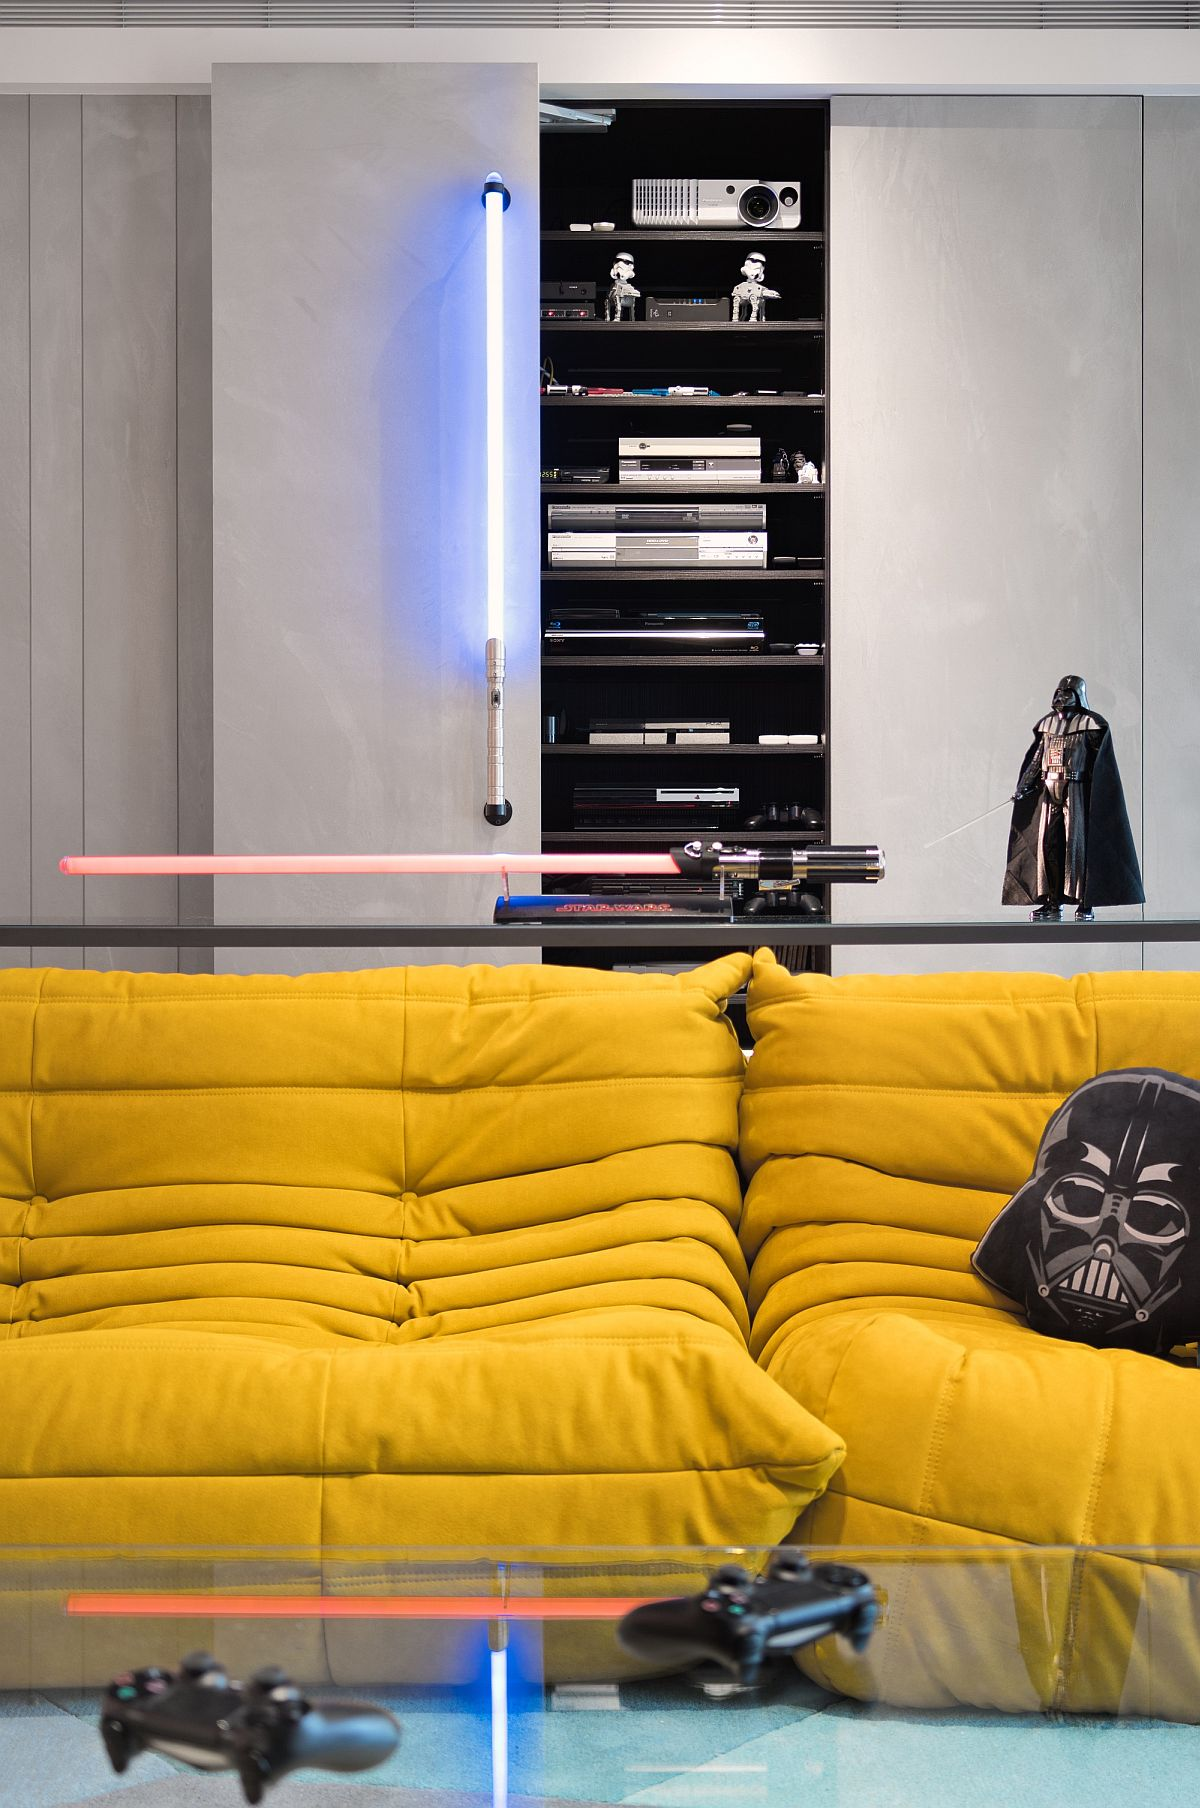 Darth-Vader-and-light-saber-style-lighting-rules-the-living-room-of-the-Star-Wars-home